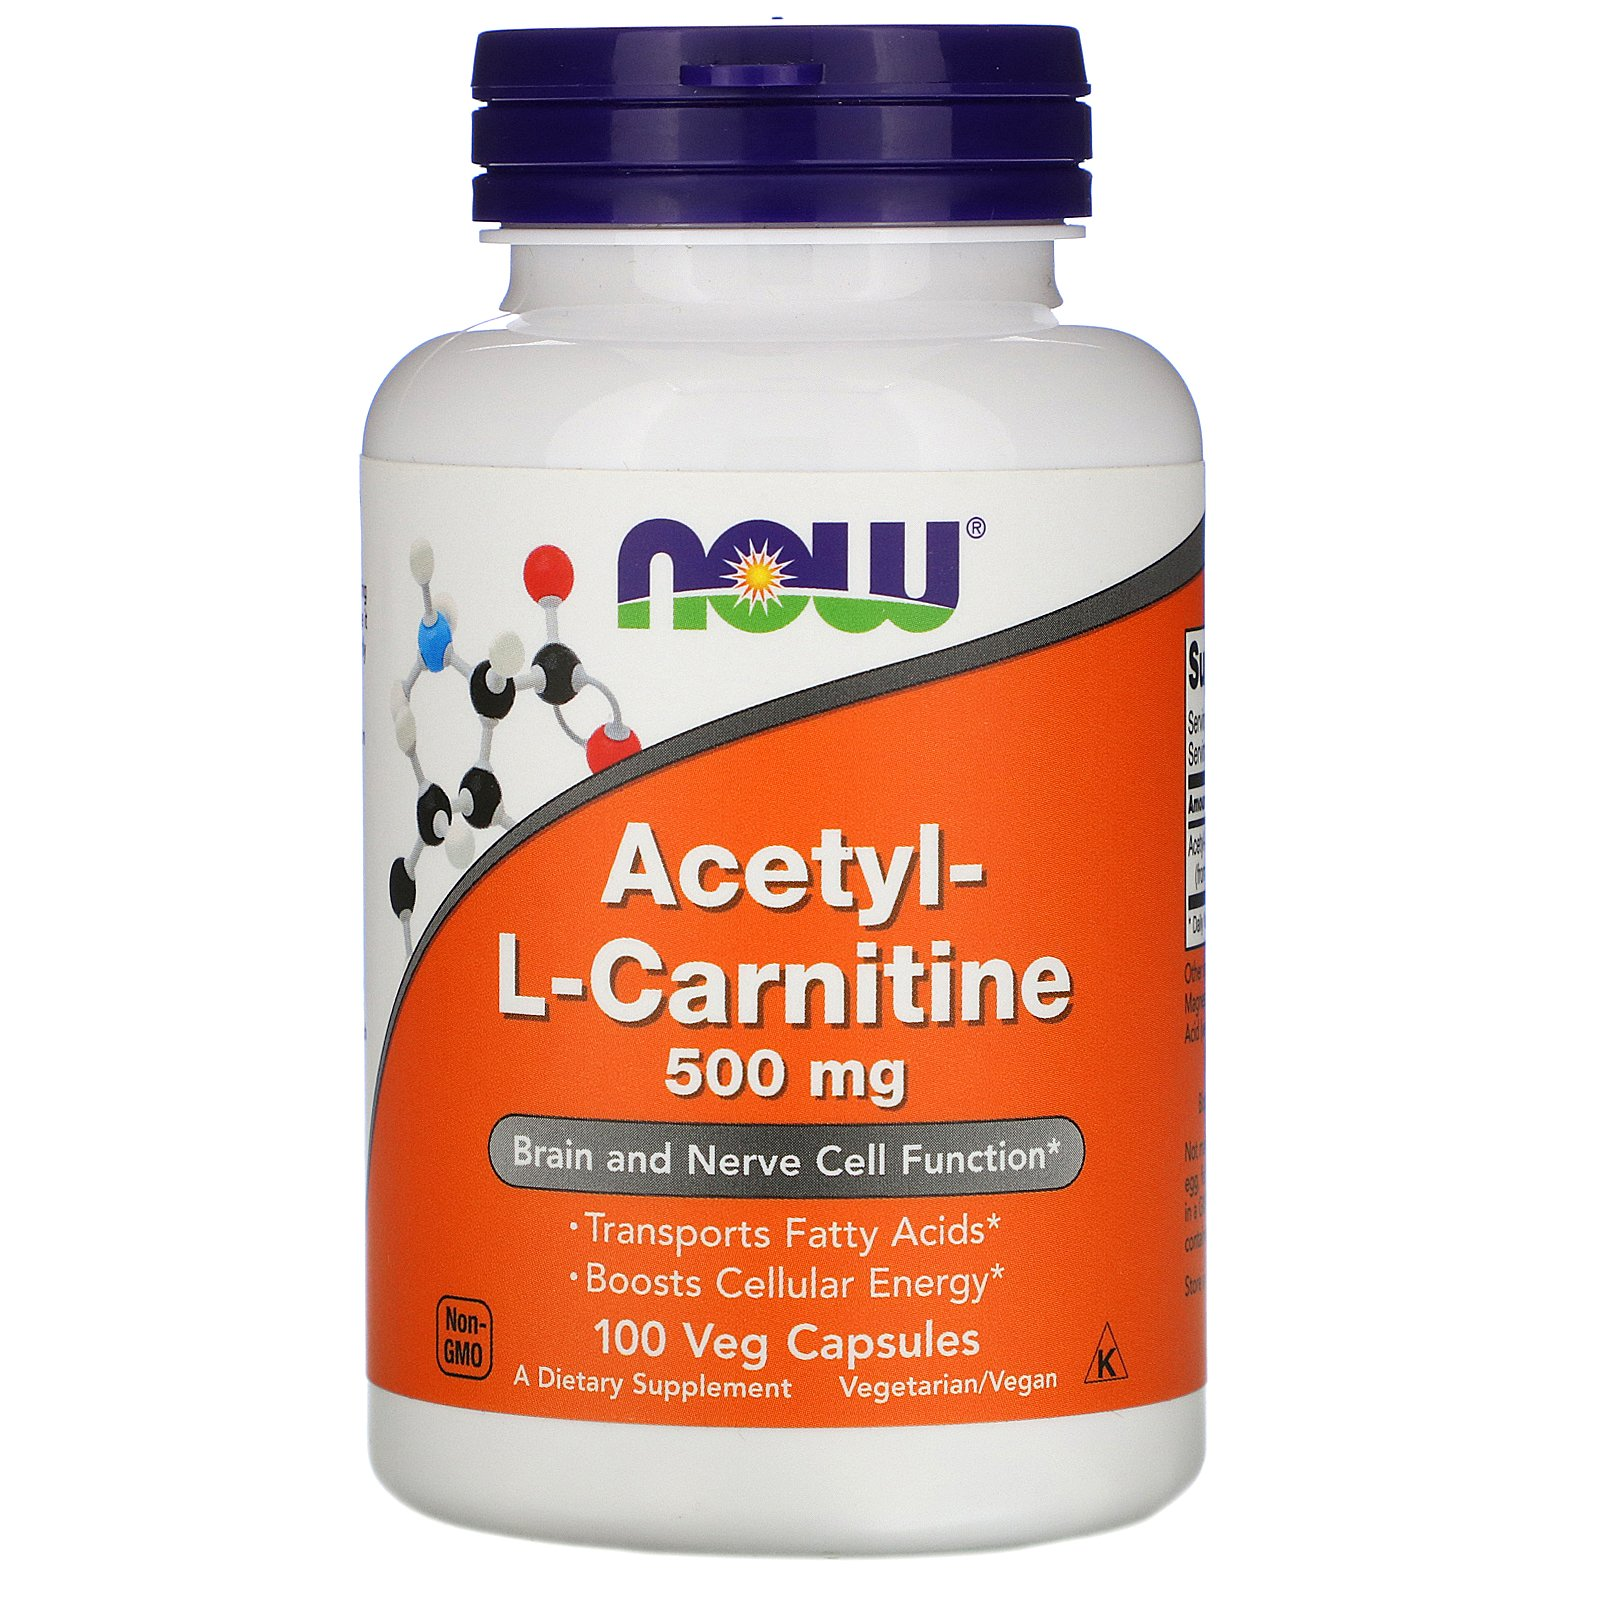 Acetyl-L-Carnitine, Ацетил-L-Карнитин 500 мг - 100 вегетарианских капсул